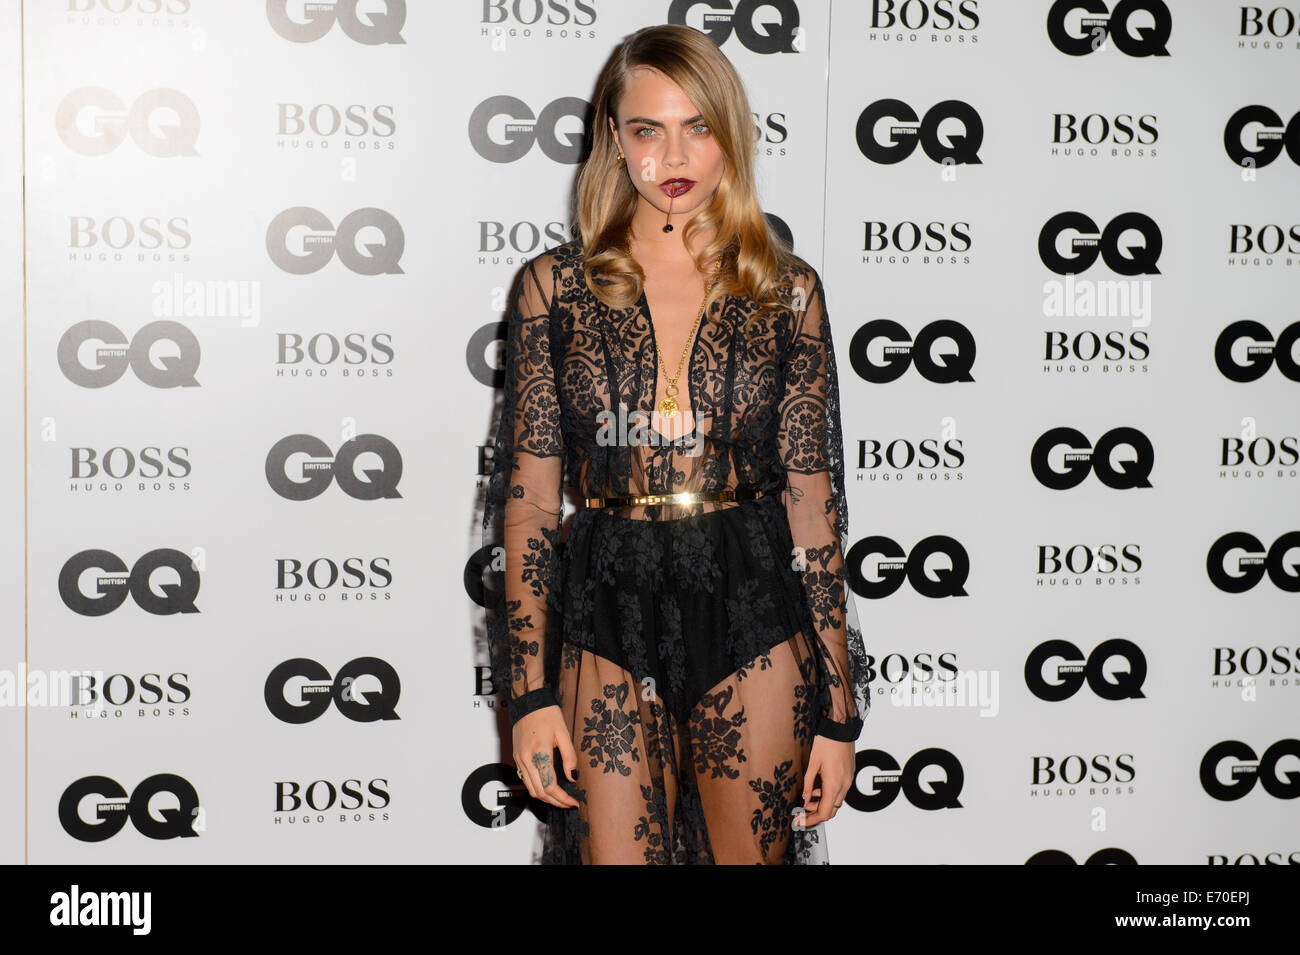 Cara Delevingne arrives for the GQ Men Of The Year Awards 2014. - Stock Image